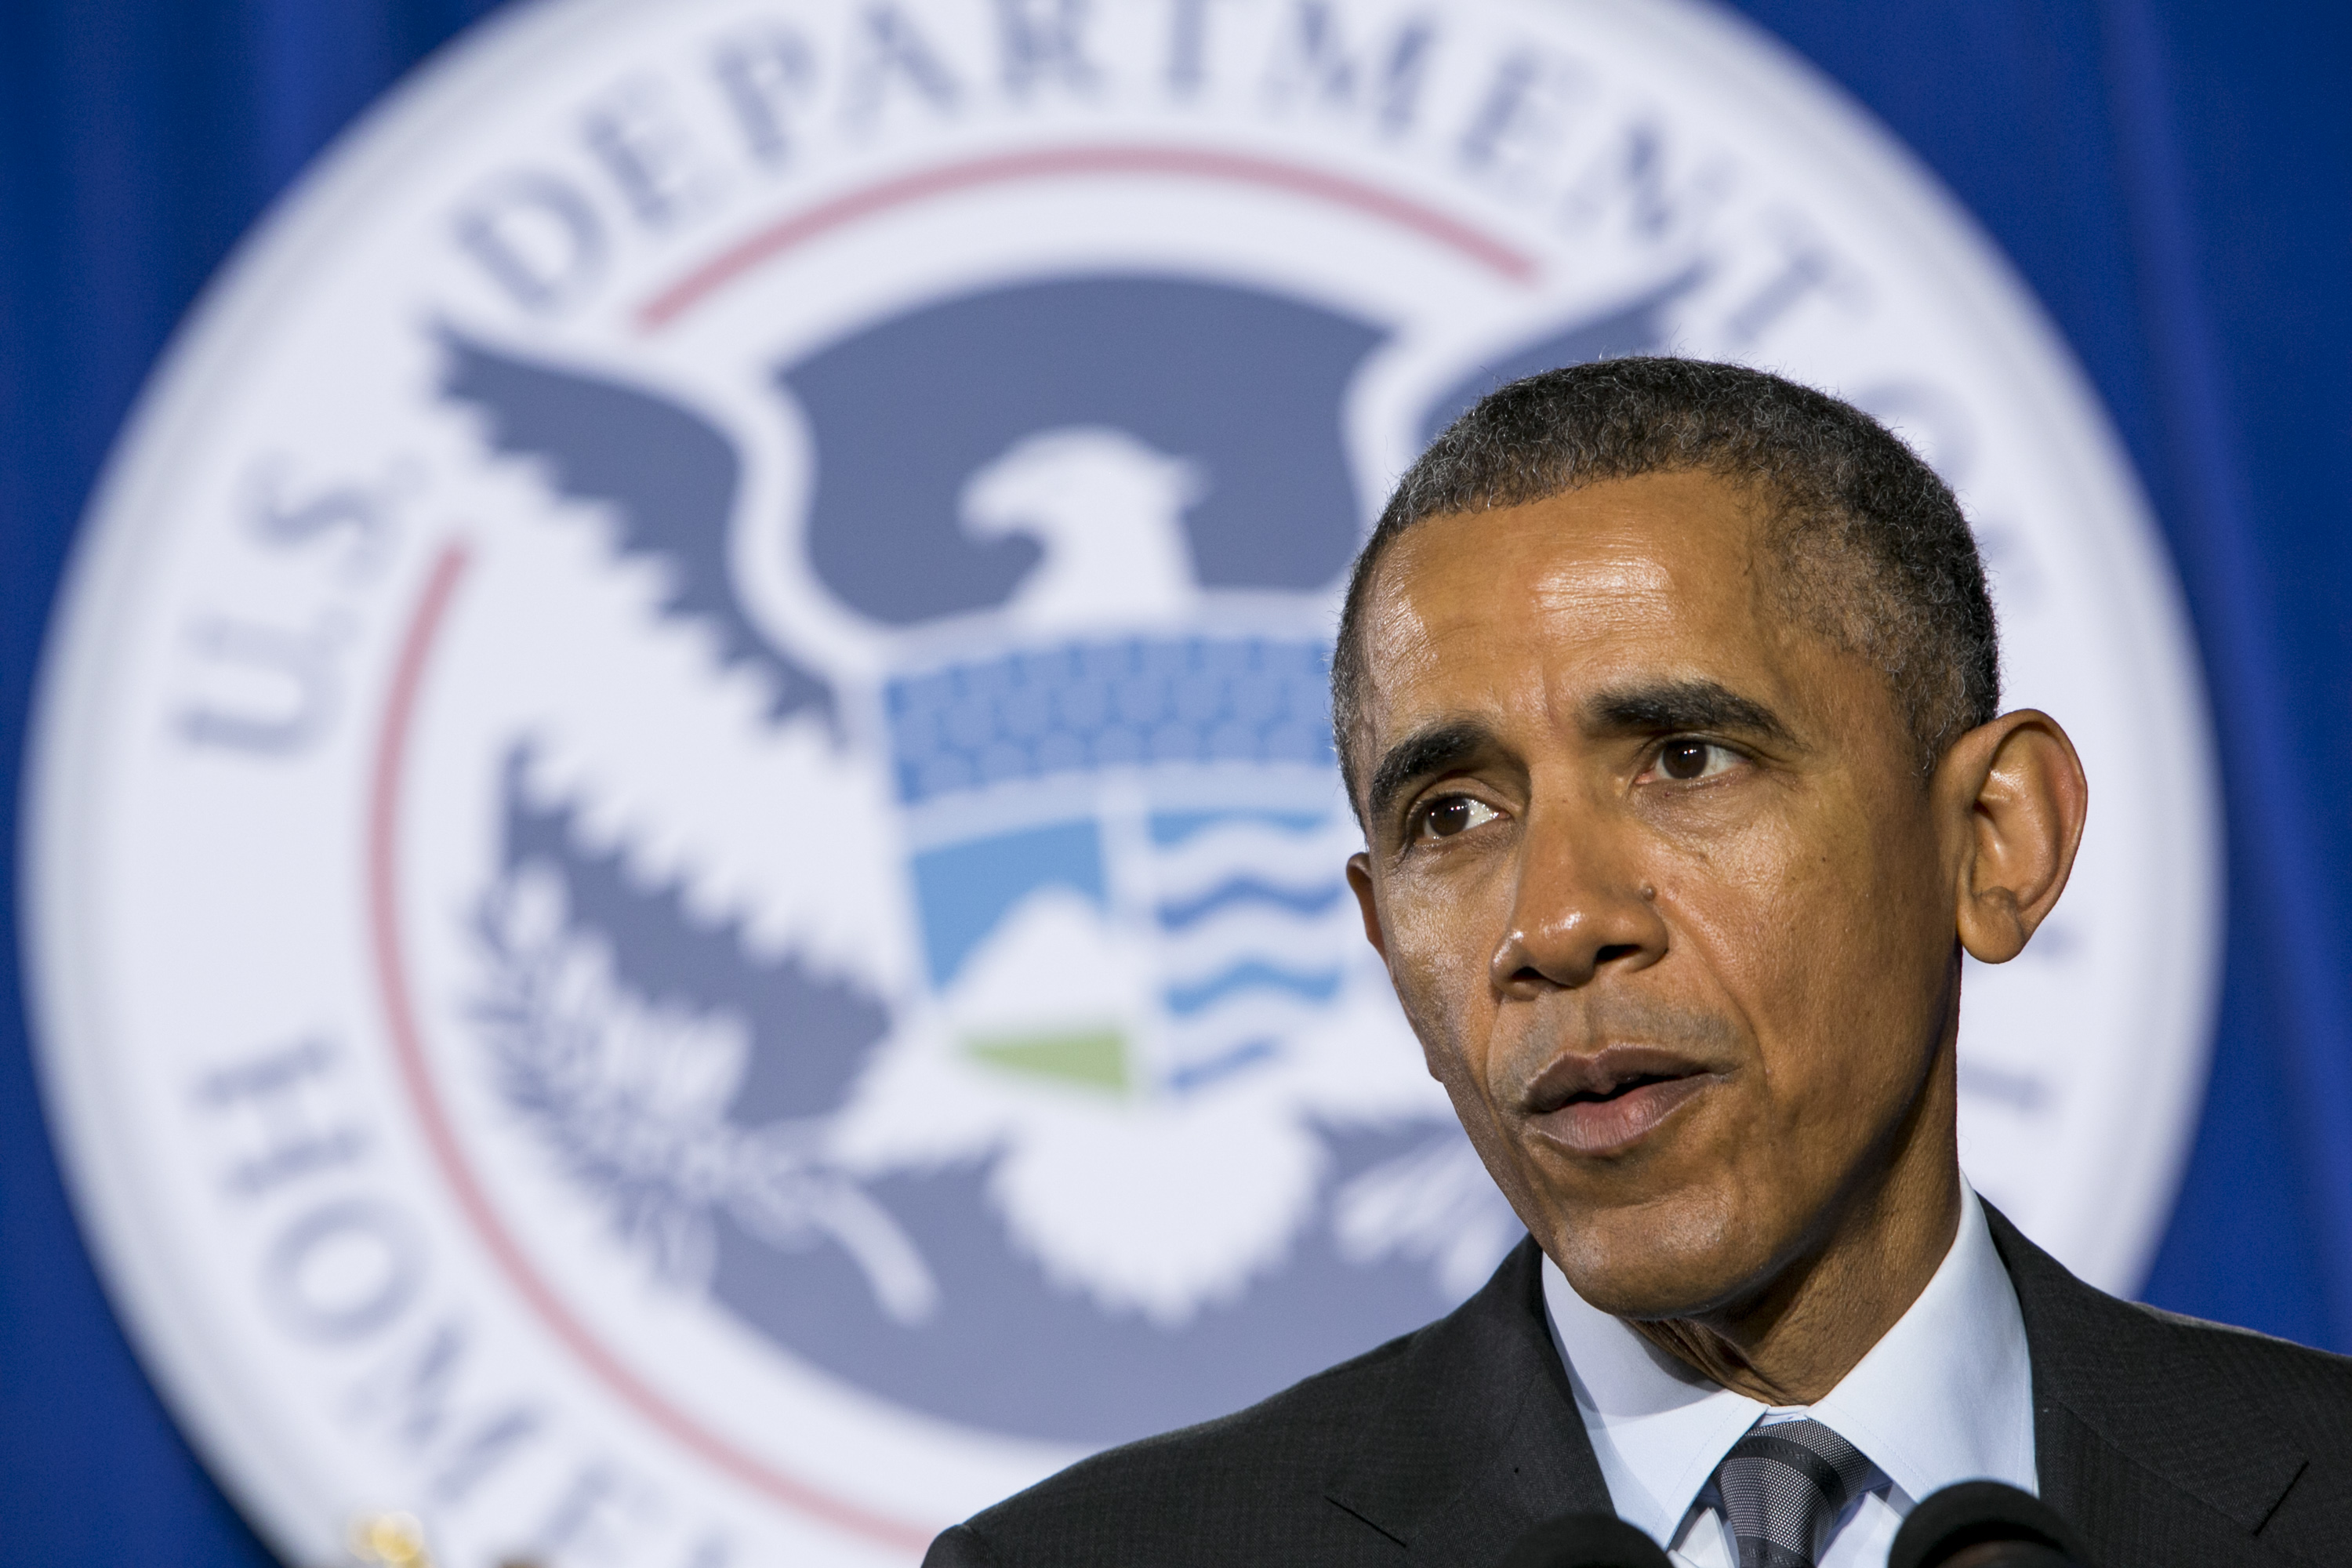 President Obama Remarks On Budget At Department Of Homeland Security